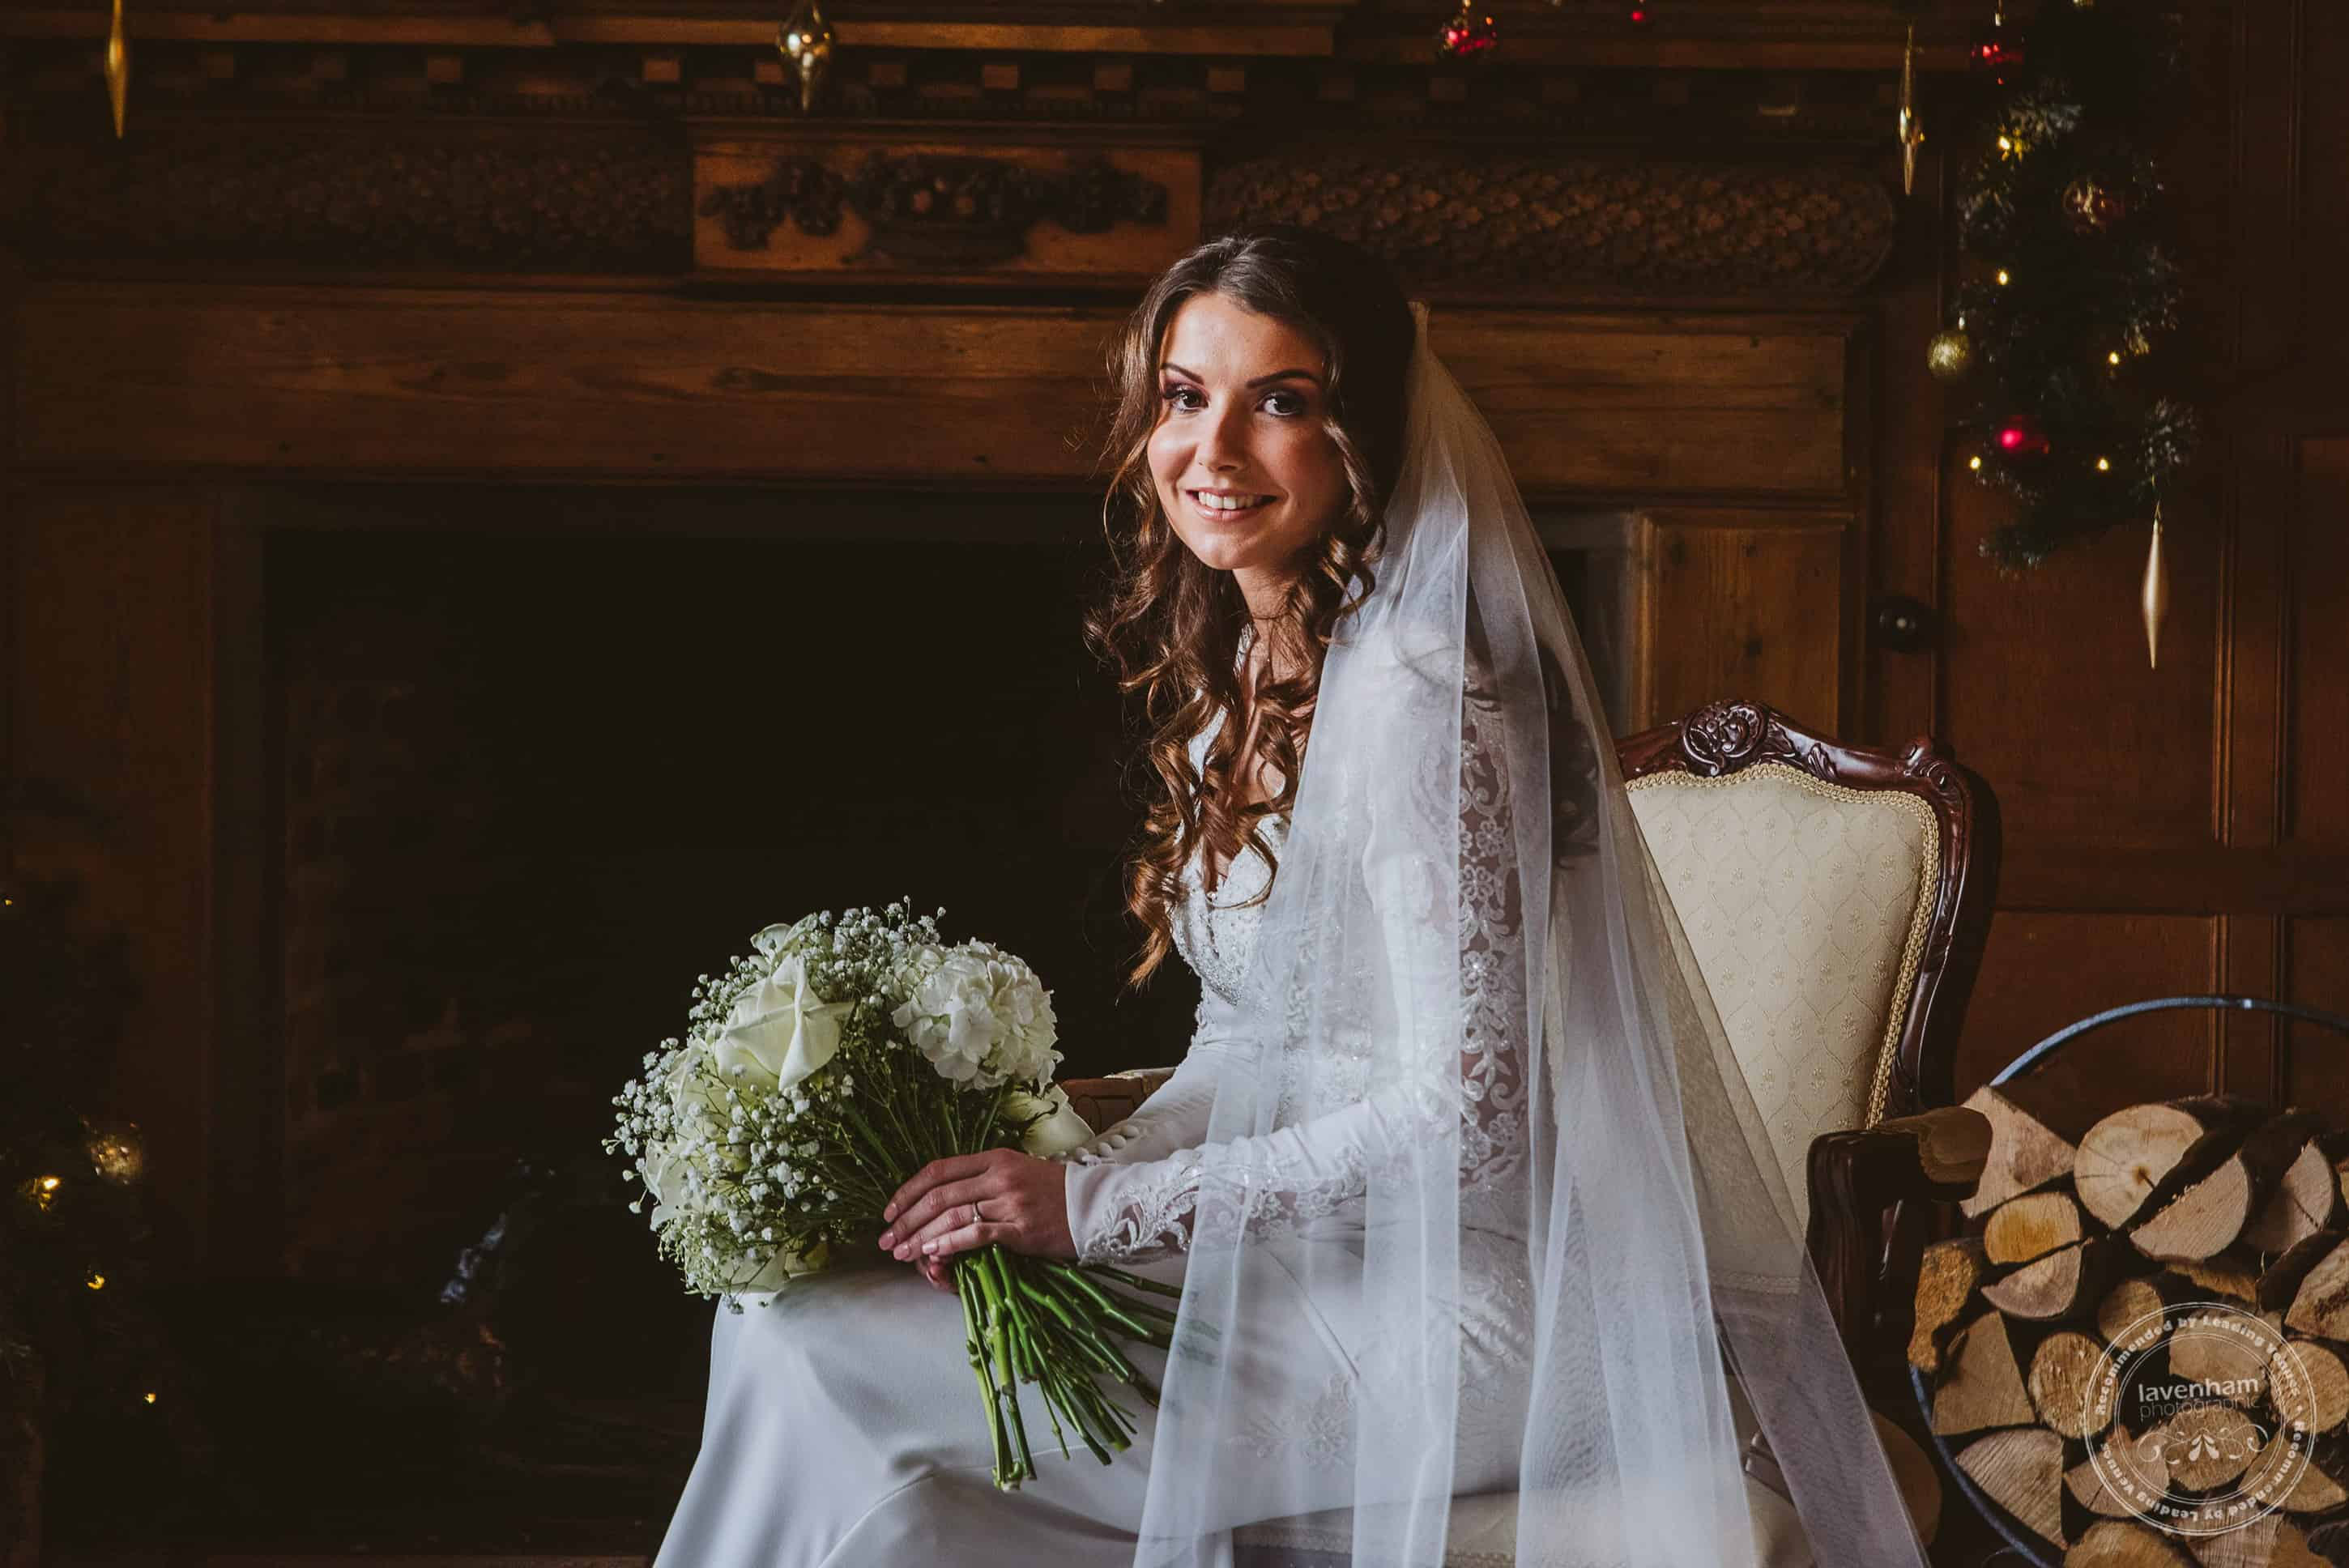 221219 Leez Priory Wedding Photoraphy 046